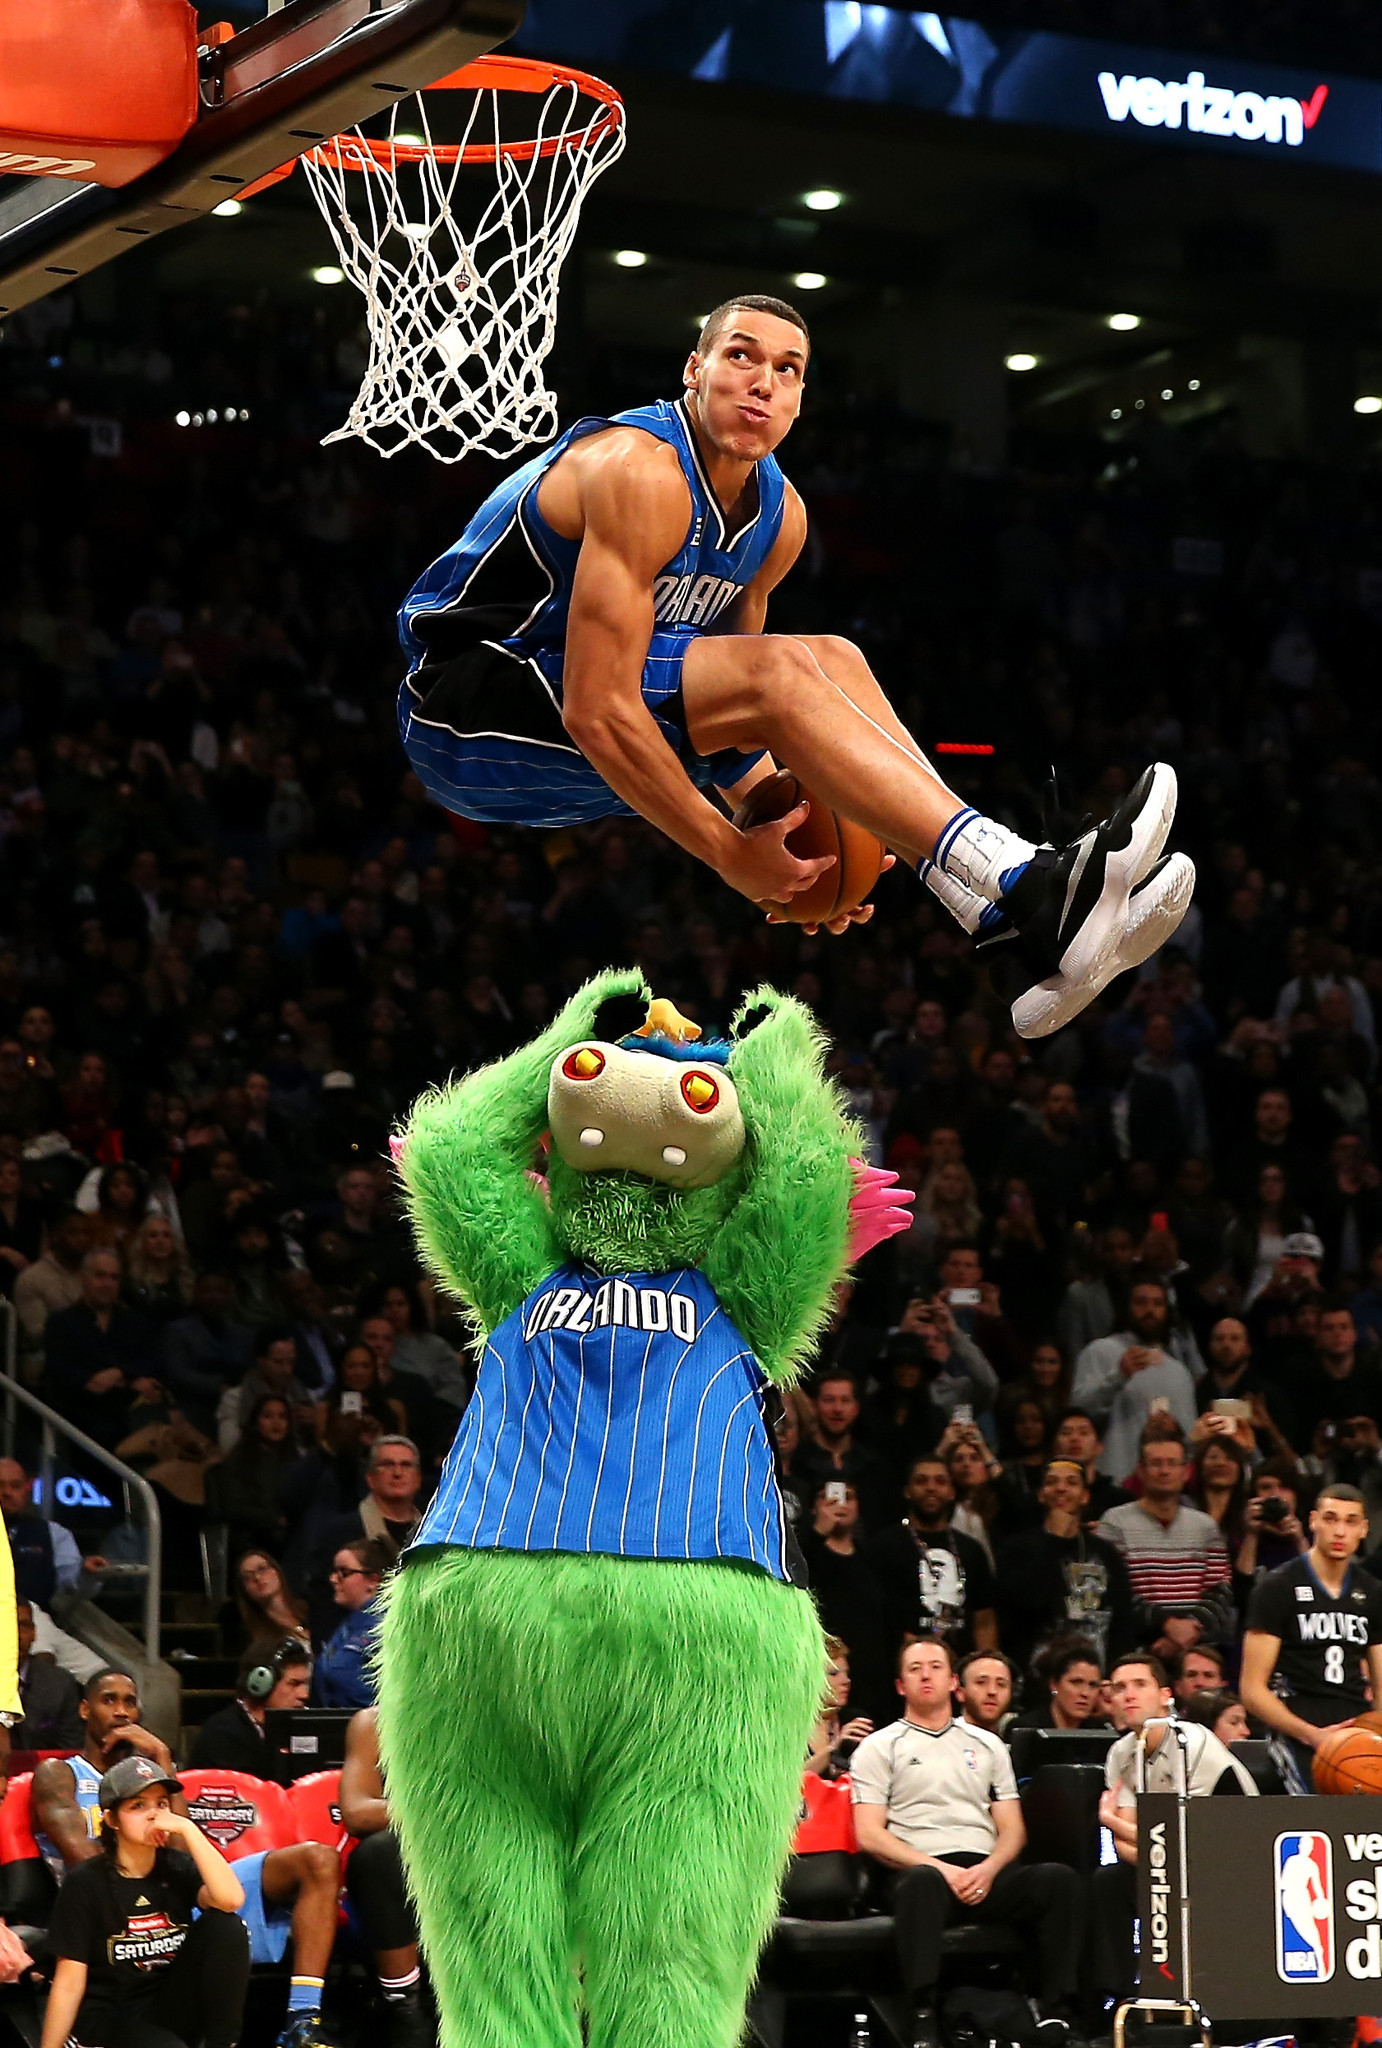 Watch Aaron Gordon and Zach LaVine revive the NBA All-Star dunk contest - LA Times